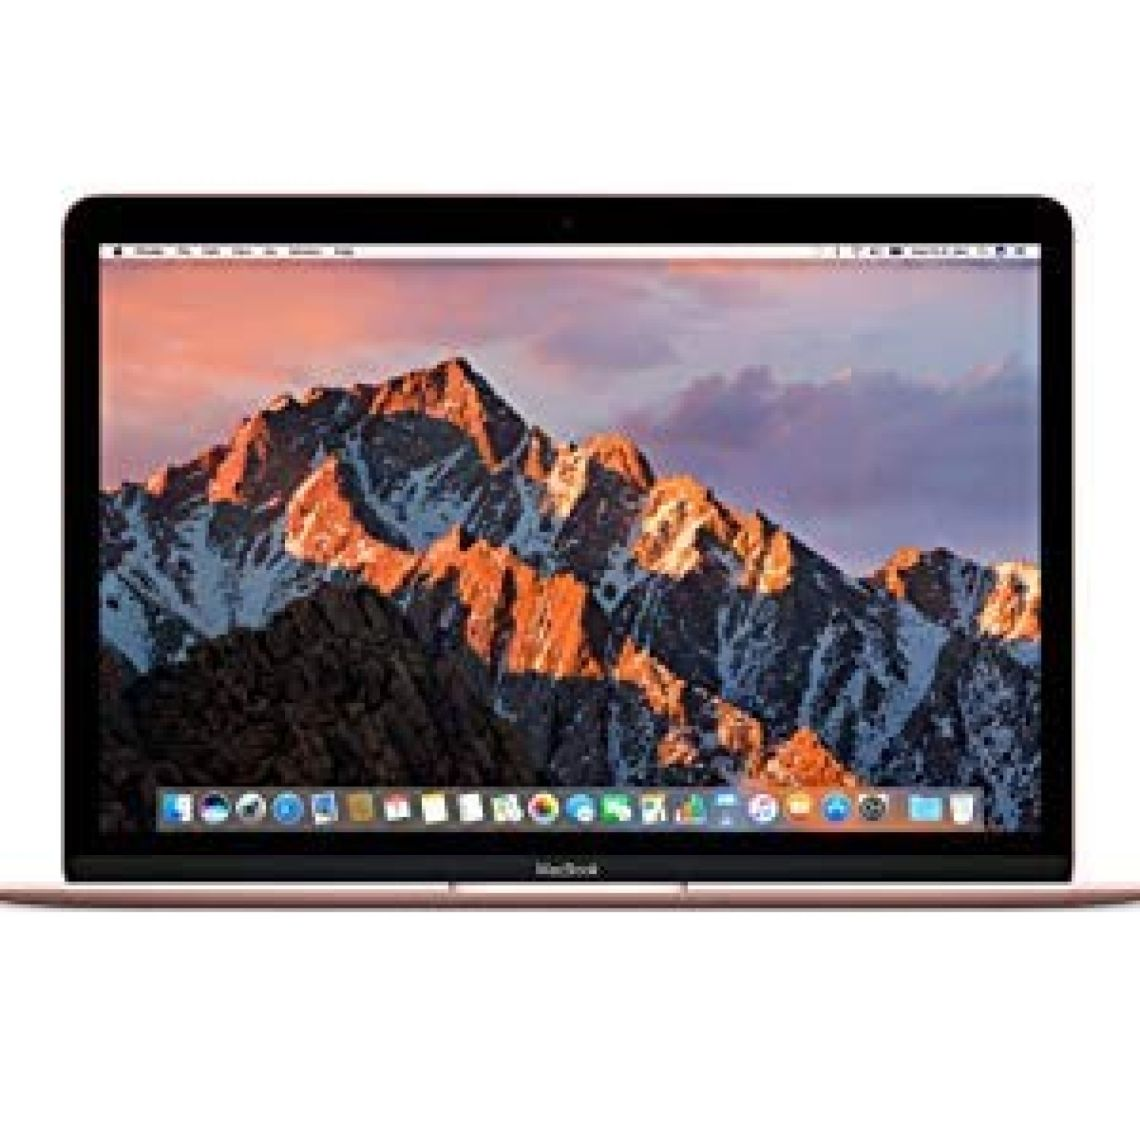 "Amazon.com: Apple MacBook (Mid 2017) 12"" Laptop, 226ppi, Intel Core M3-7Y32 Dual-Core, 256GB, 8GB DDR3, 802.11ac, Bluetooth, macOS 10.12.5 High Sierra - Rose Gold (Refurbished): Computers & Accessories"